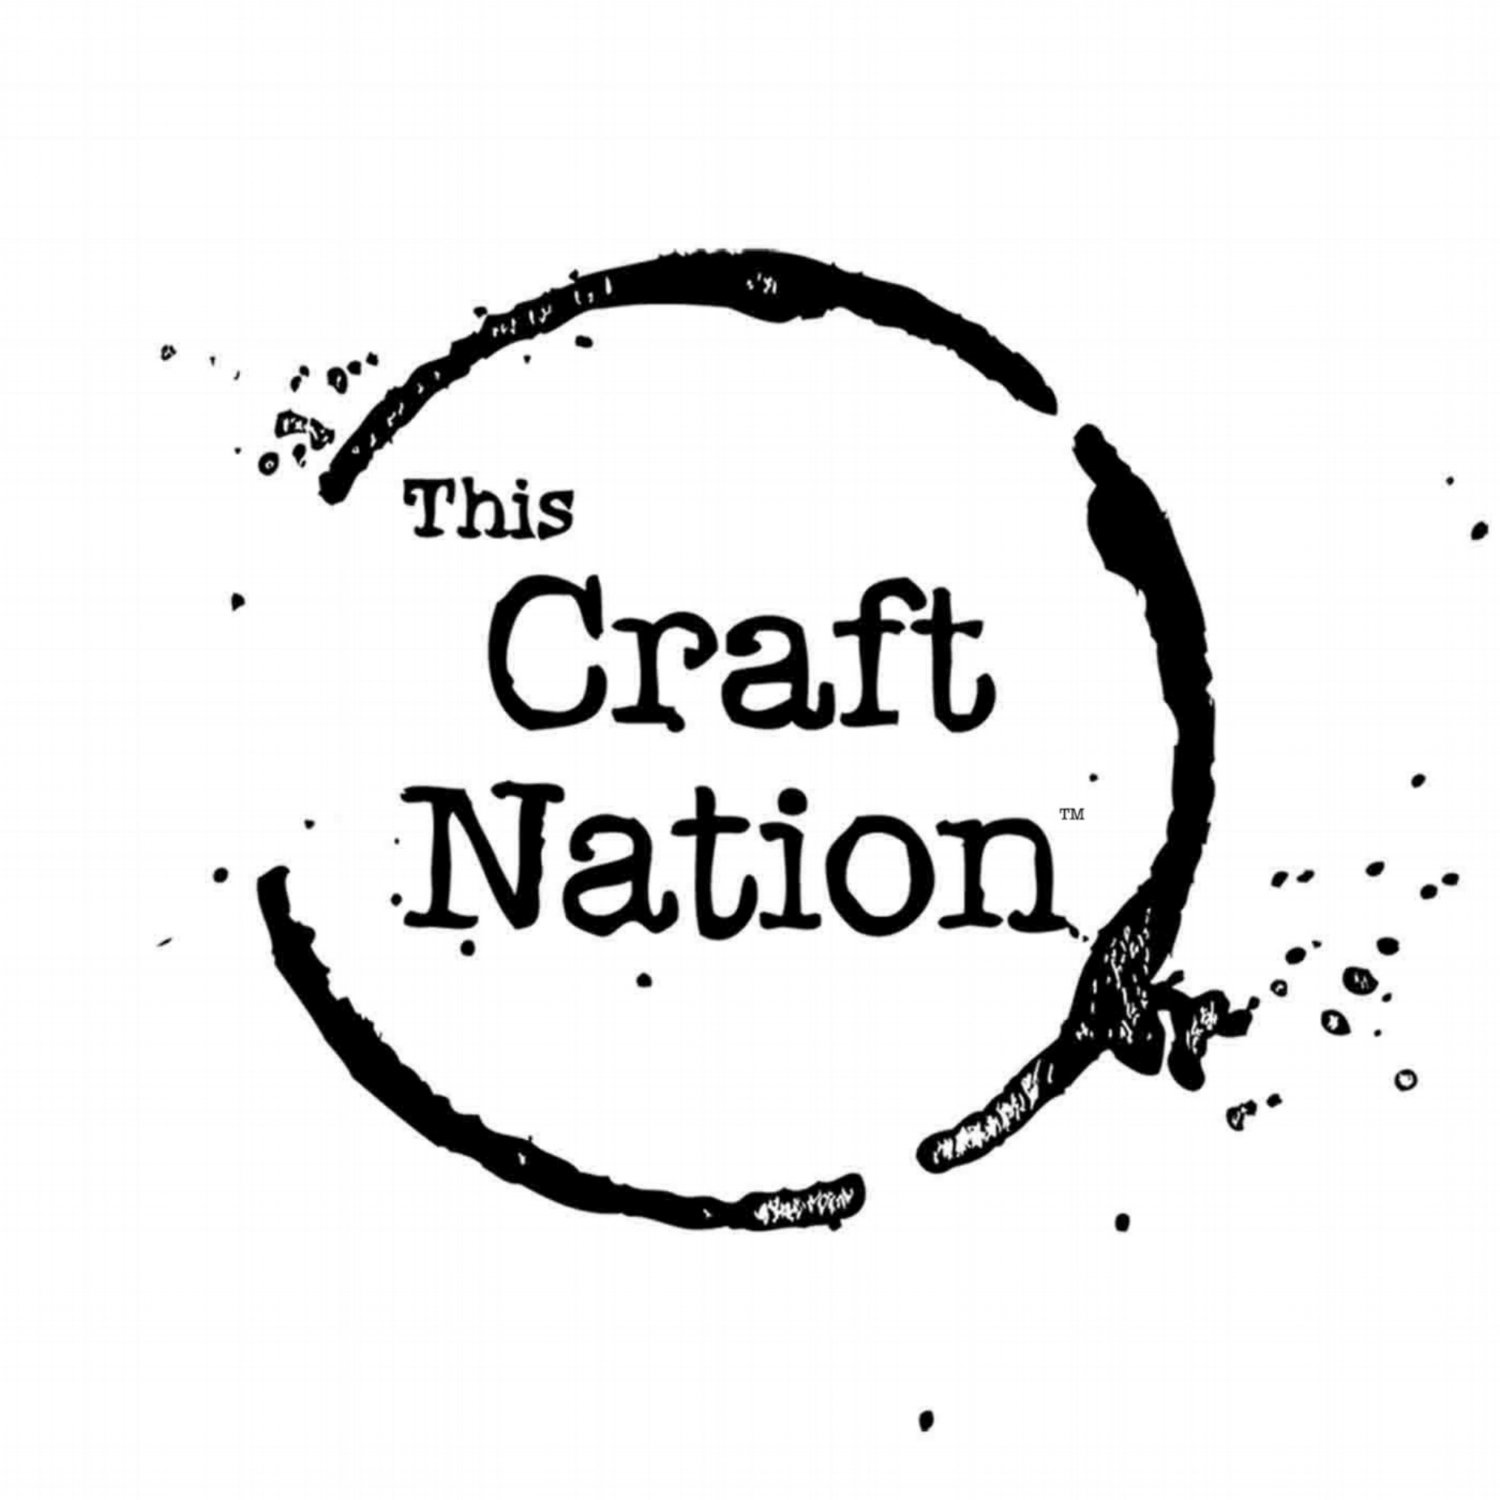 Gallery The Grange Kitchen & Bar — This Craft Nation